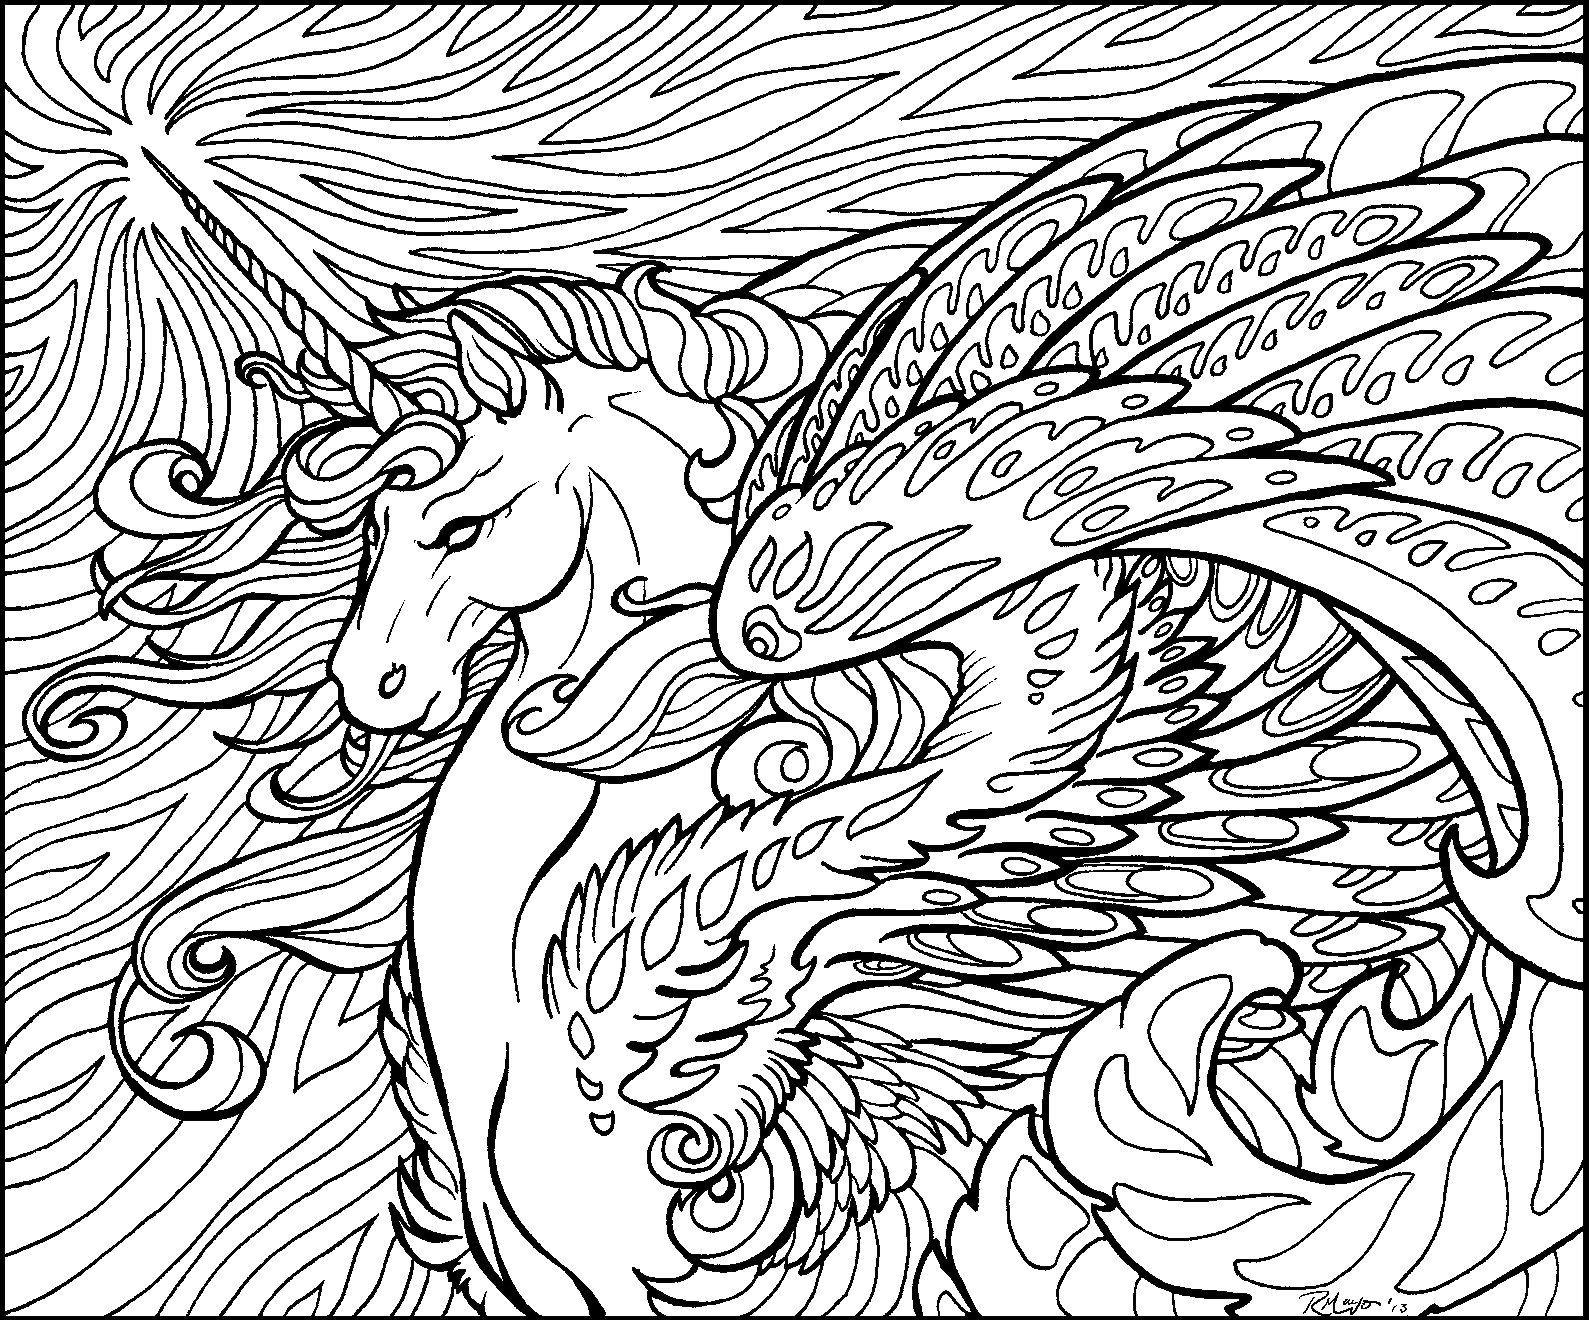 coloring pages for adults unicorn unicorn coloring pages for adults best coloring pages pages coloring unicorn adults for